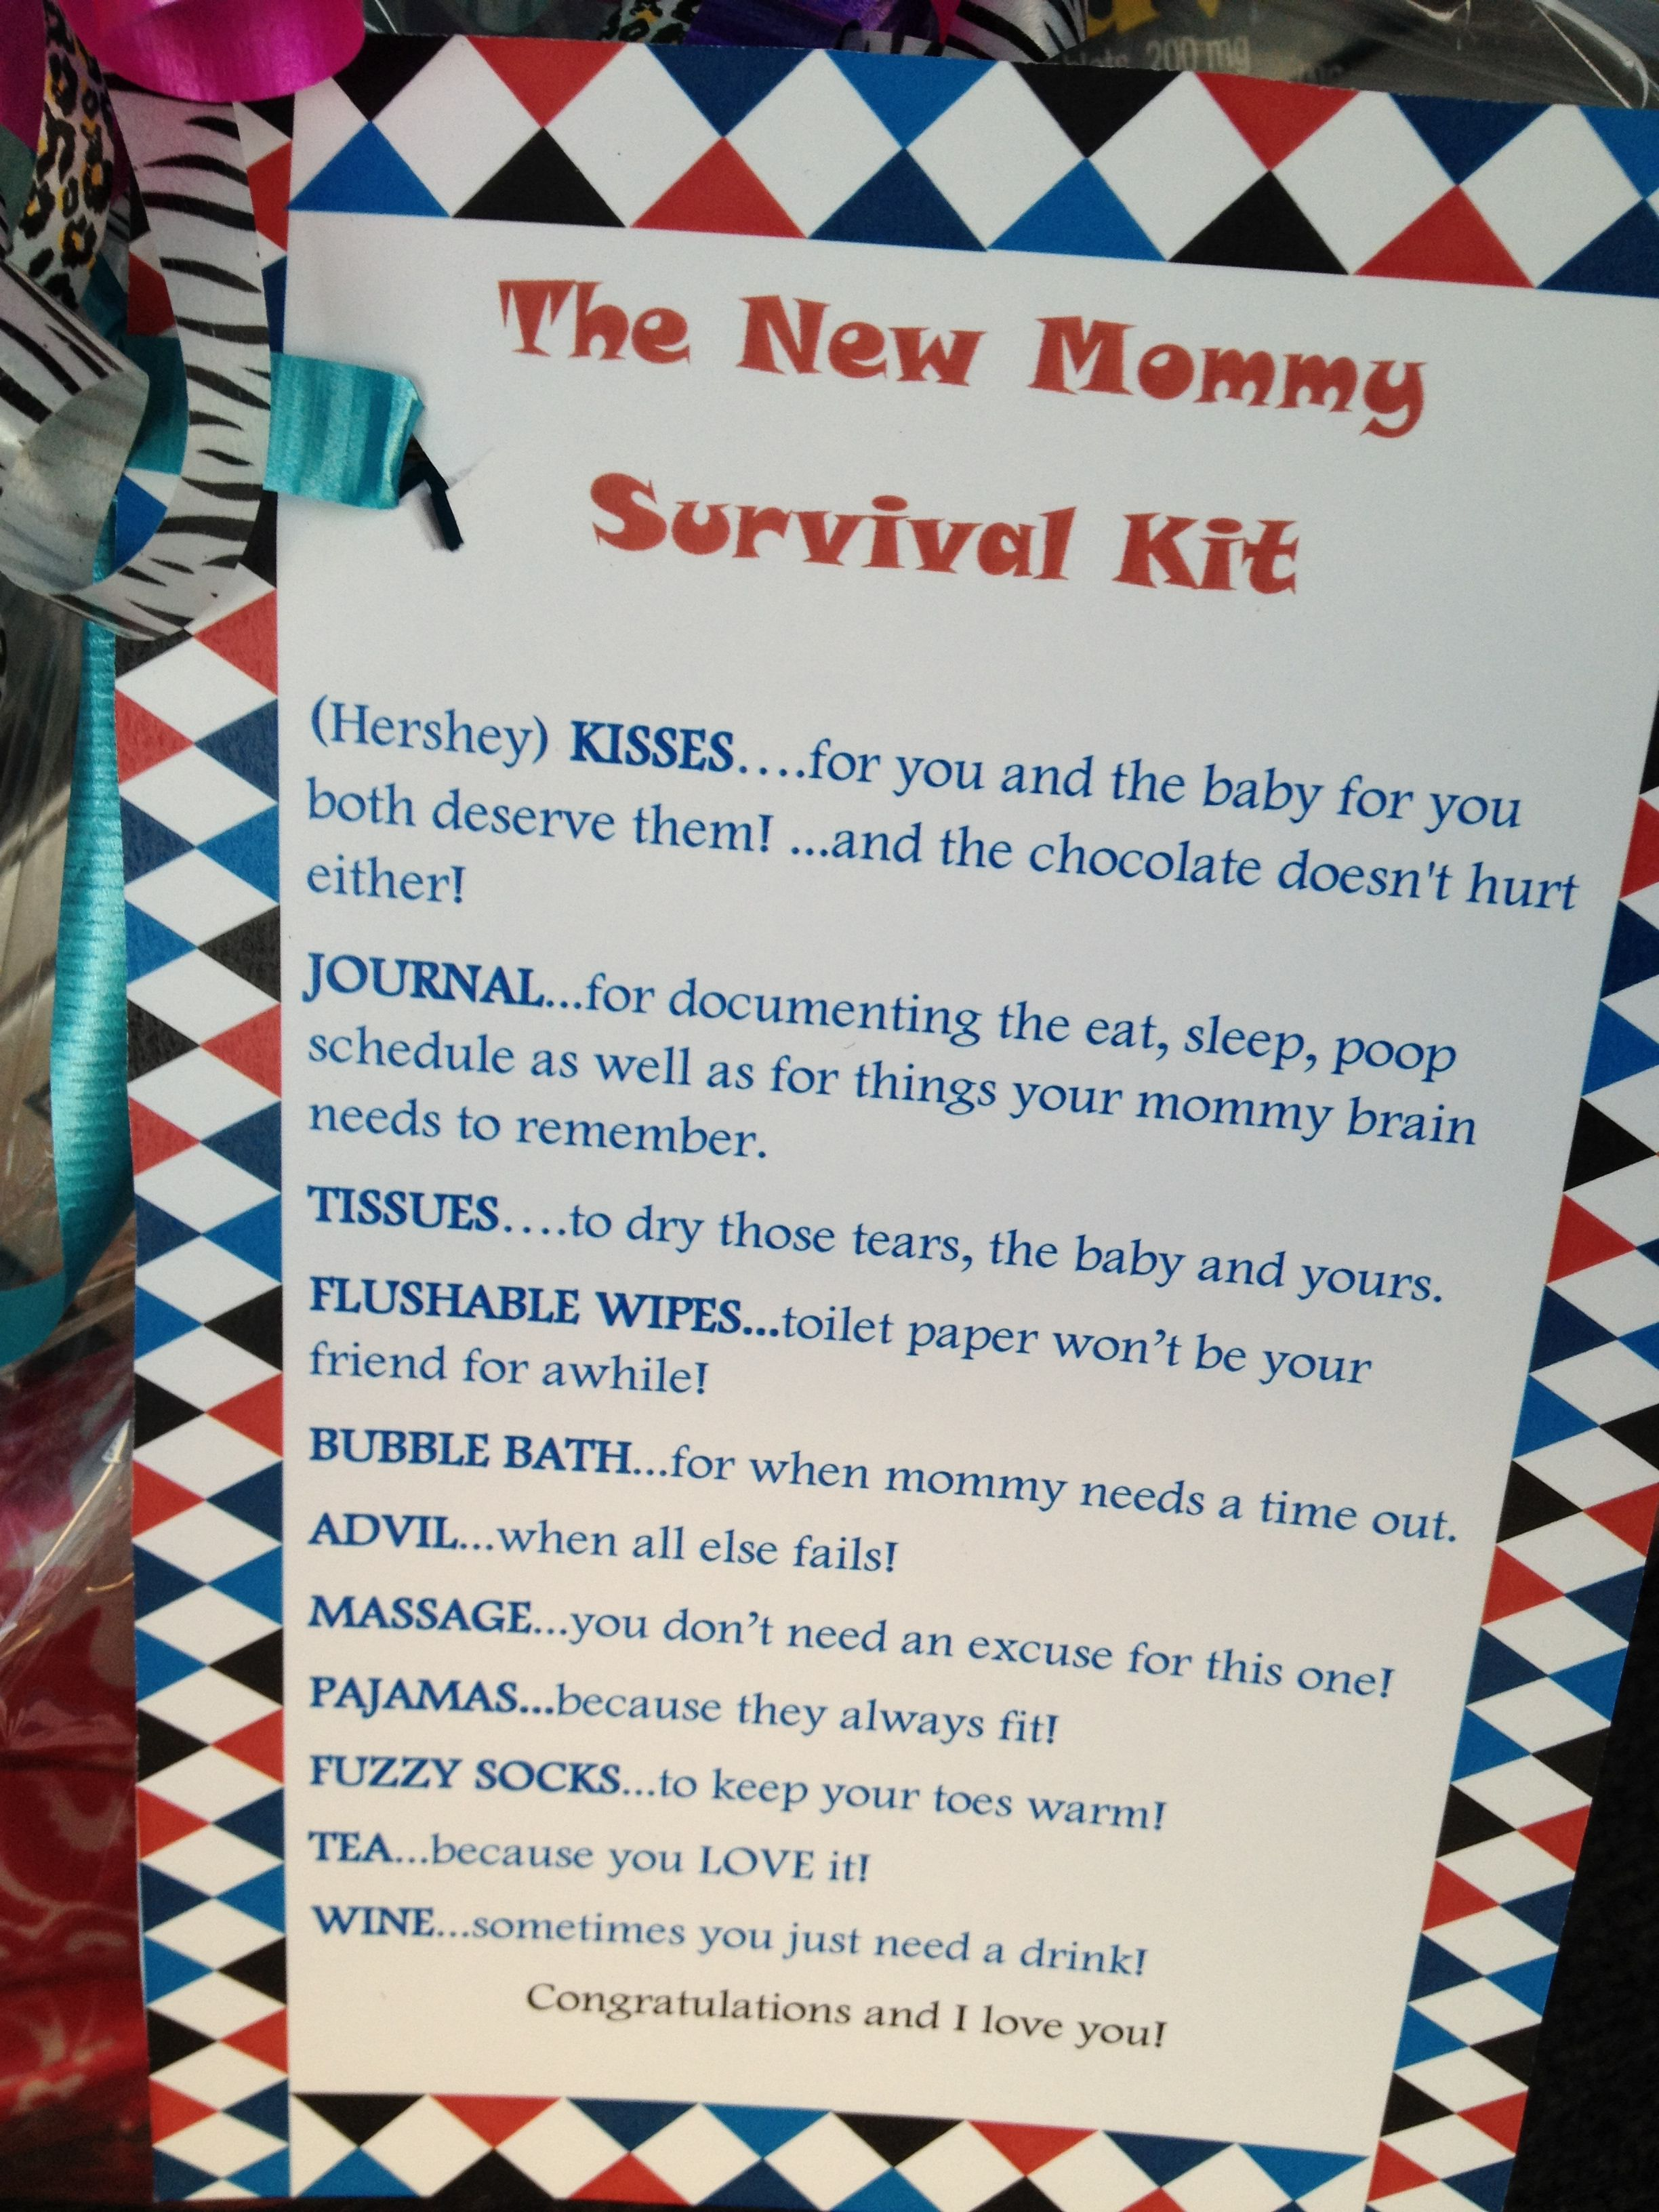 new mommy survival kit perfect for a baby shower type out the type out the card put it on cute scrapbooking paper get the items together put it in a basket and wrap it up